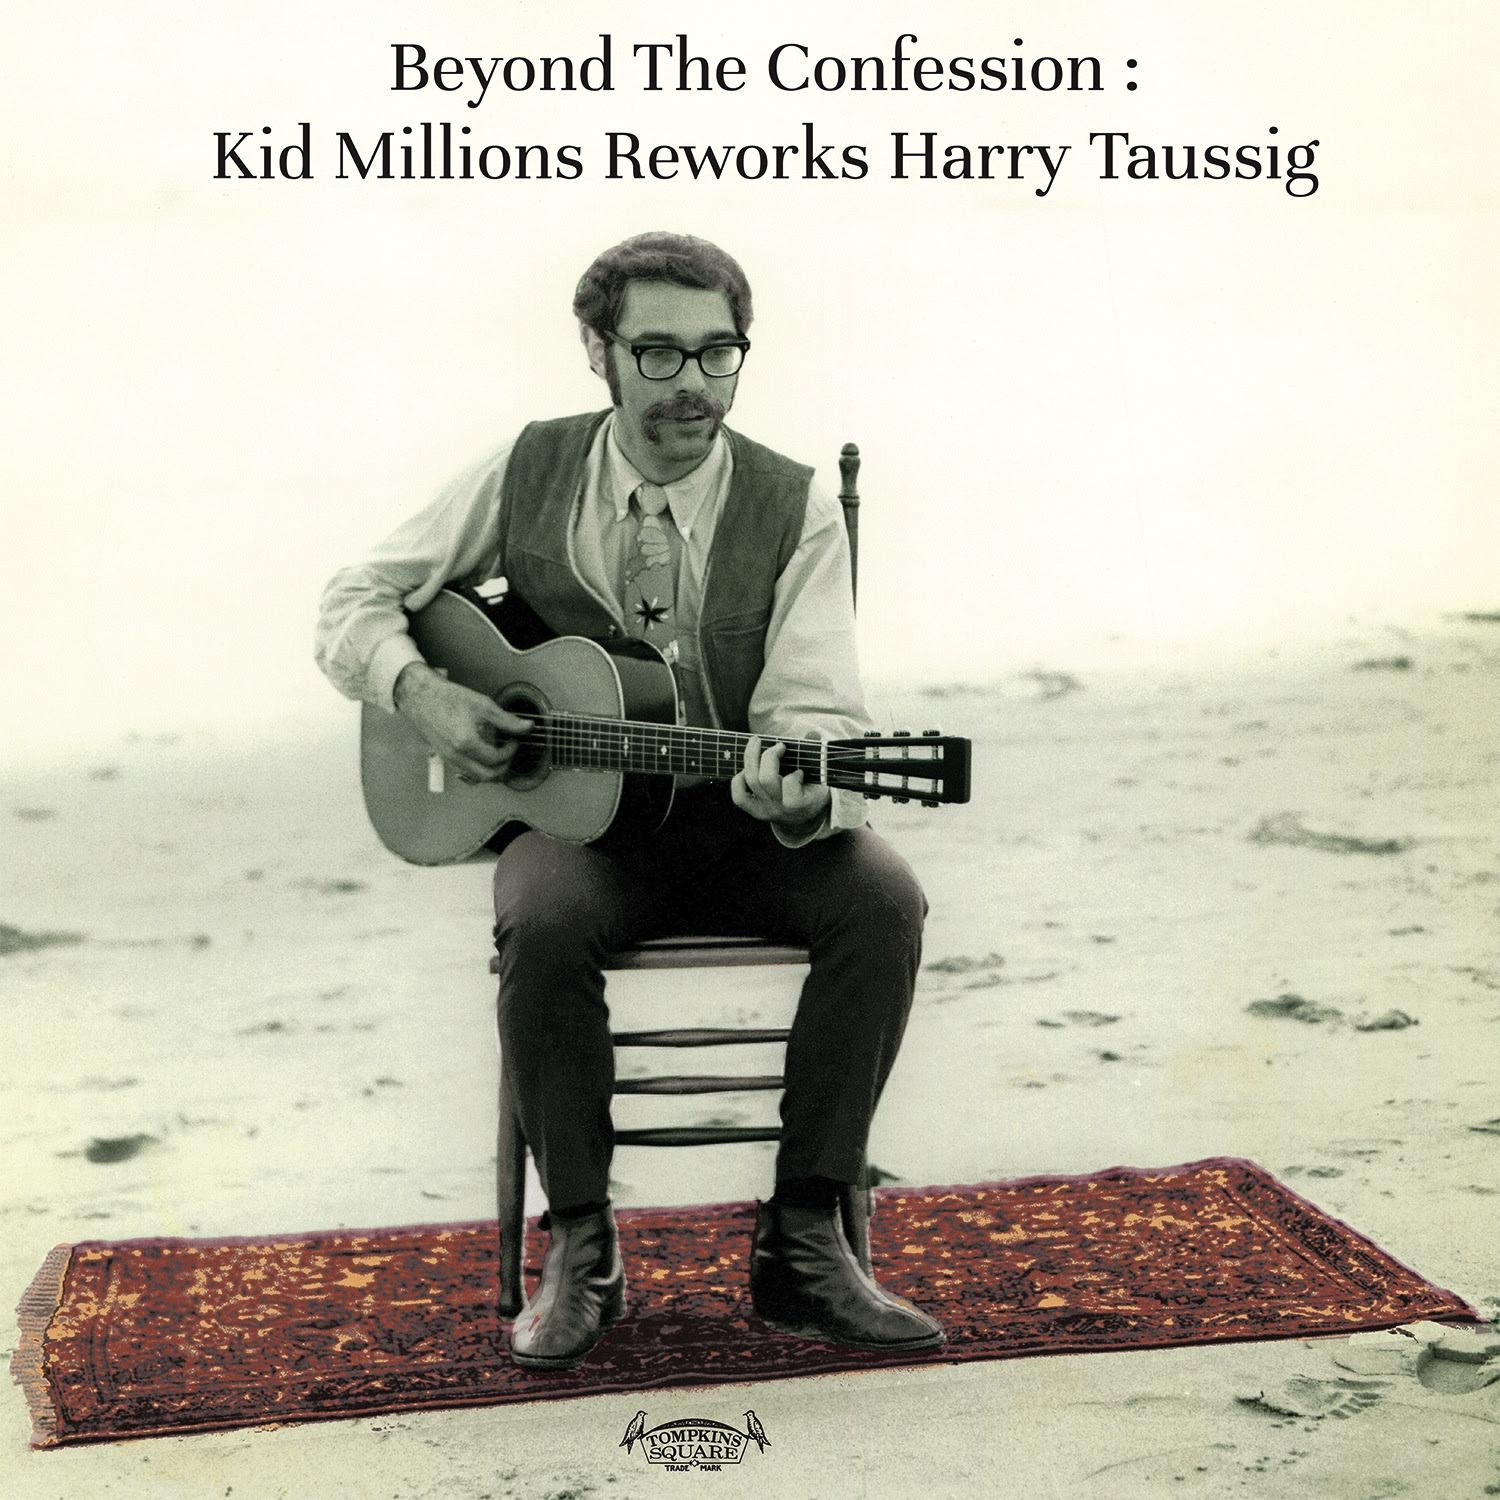 Kid Millions - Beyond The Confession : Kid Millions Reworks Harry Taussig